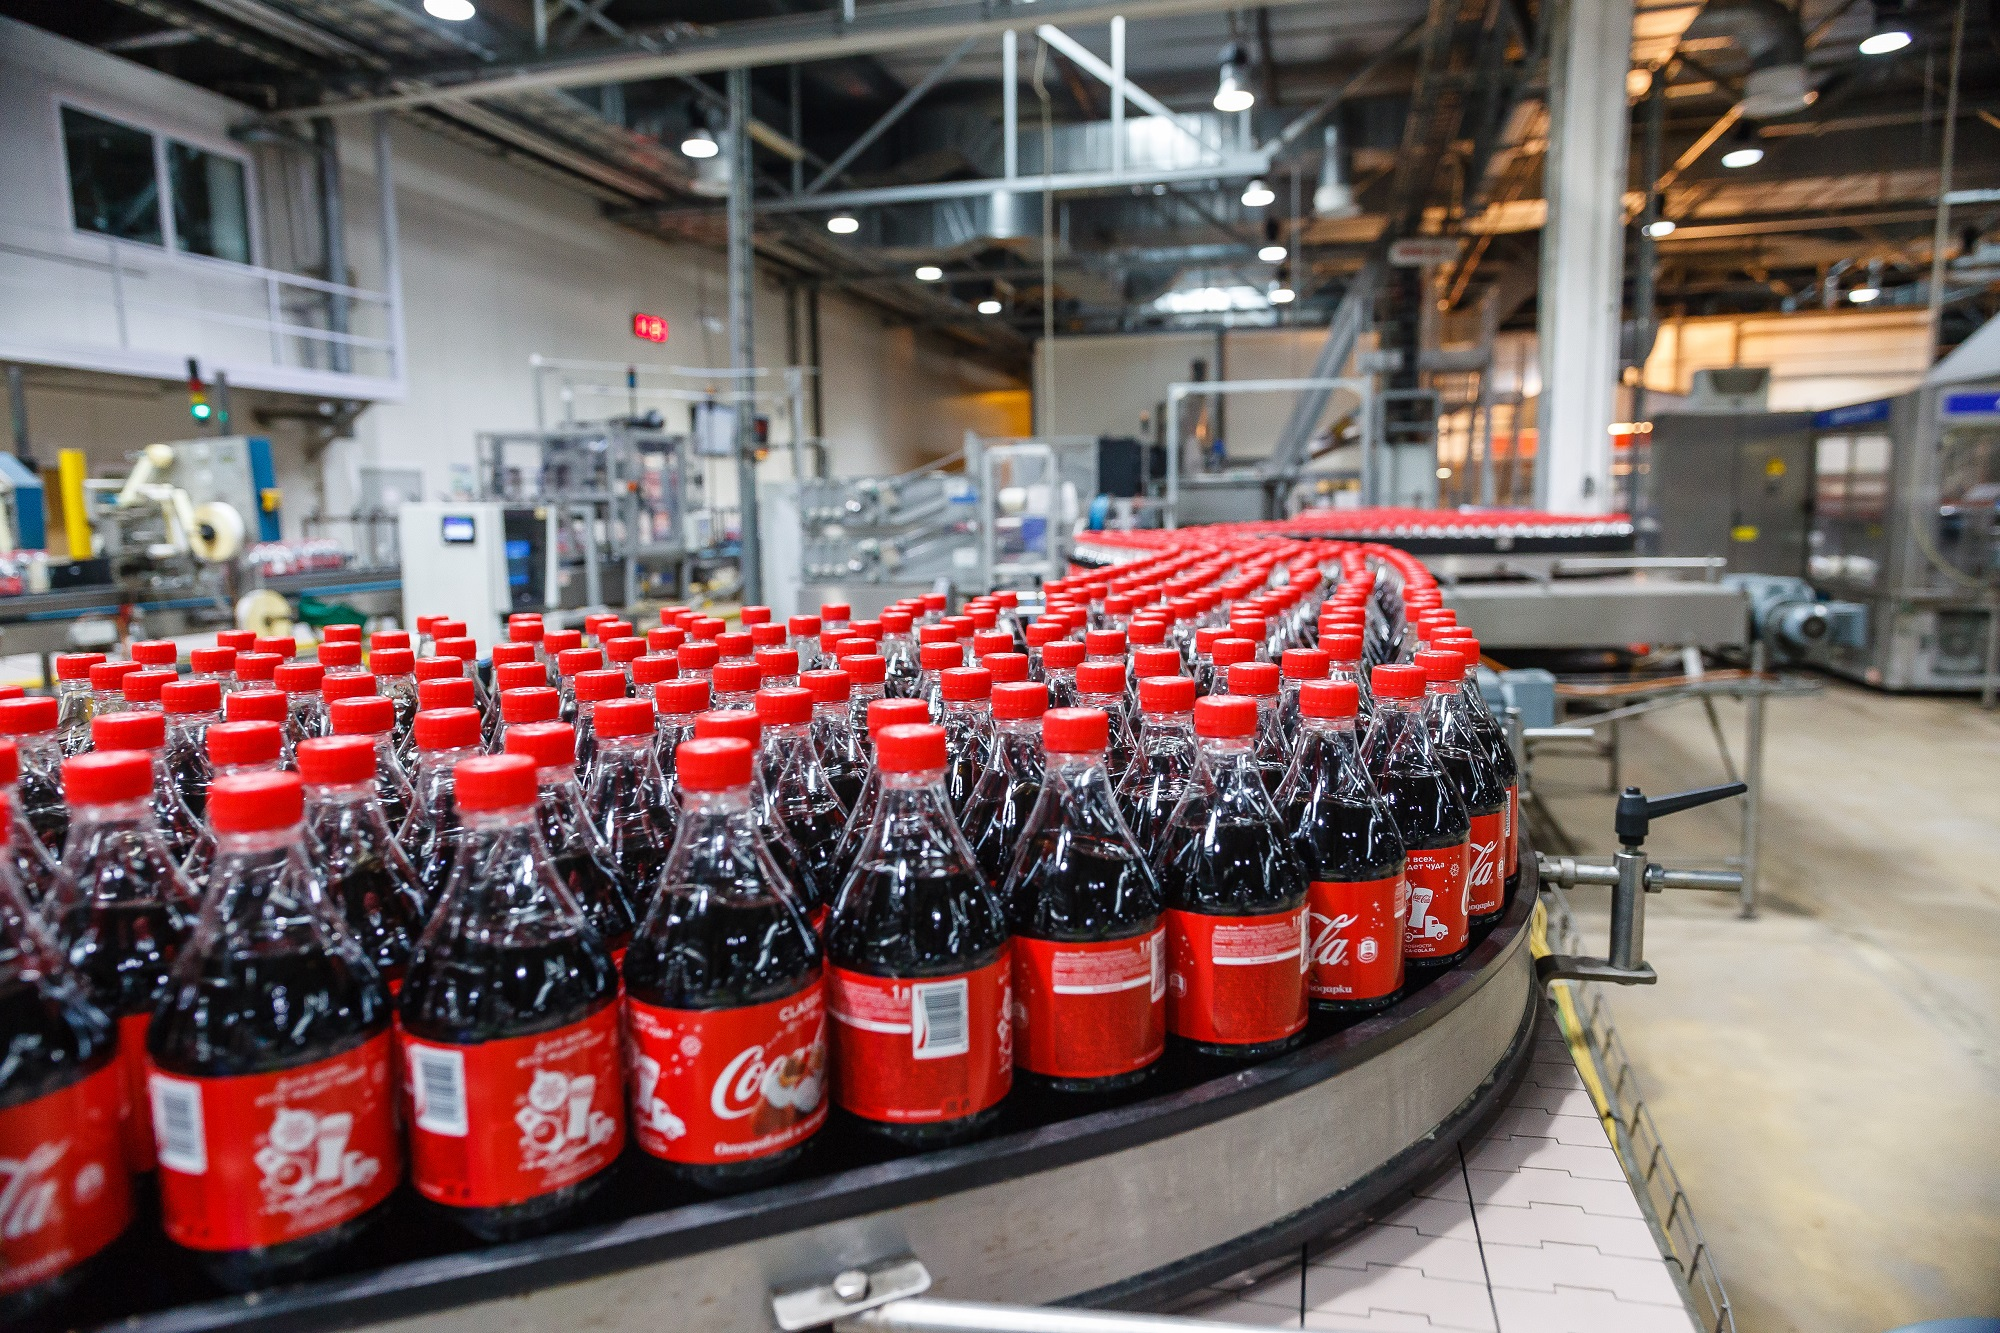 inbound logistics of coca cola My job responsibility included managing inbound and outbound logistics of coca-cola by planning and executing efficient distribution and movement of stocks from fg depots to distributors to ensure availability of all brands as per market demand.